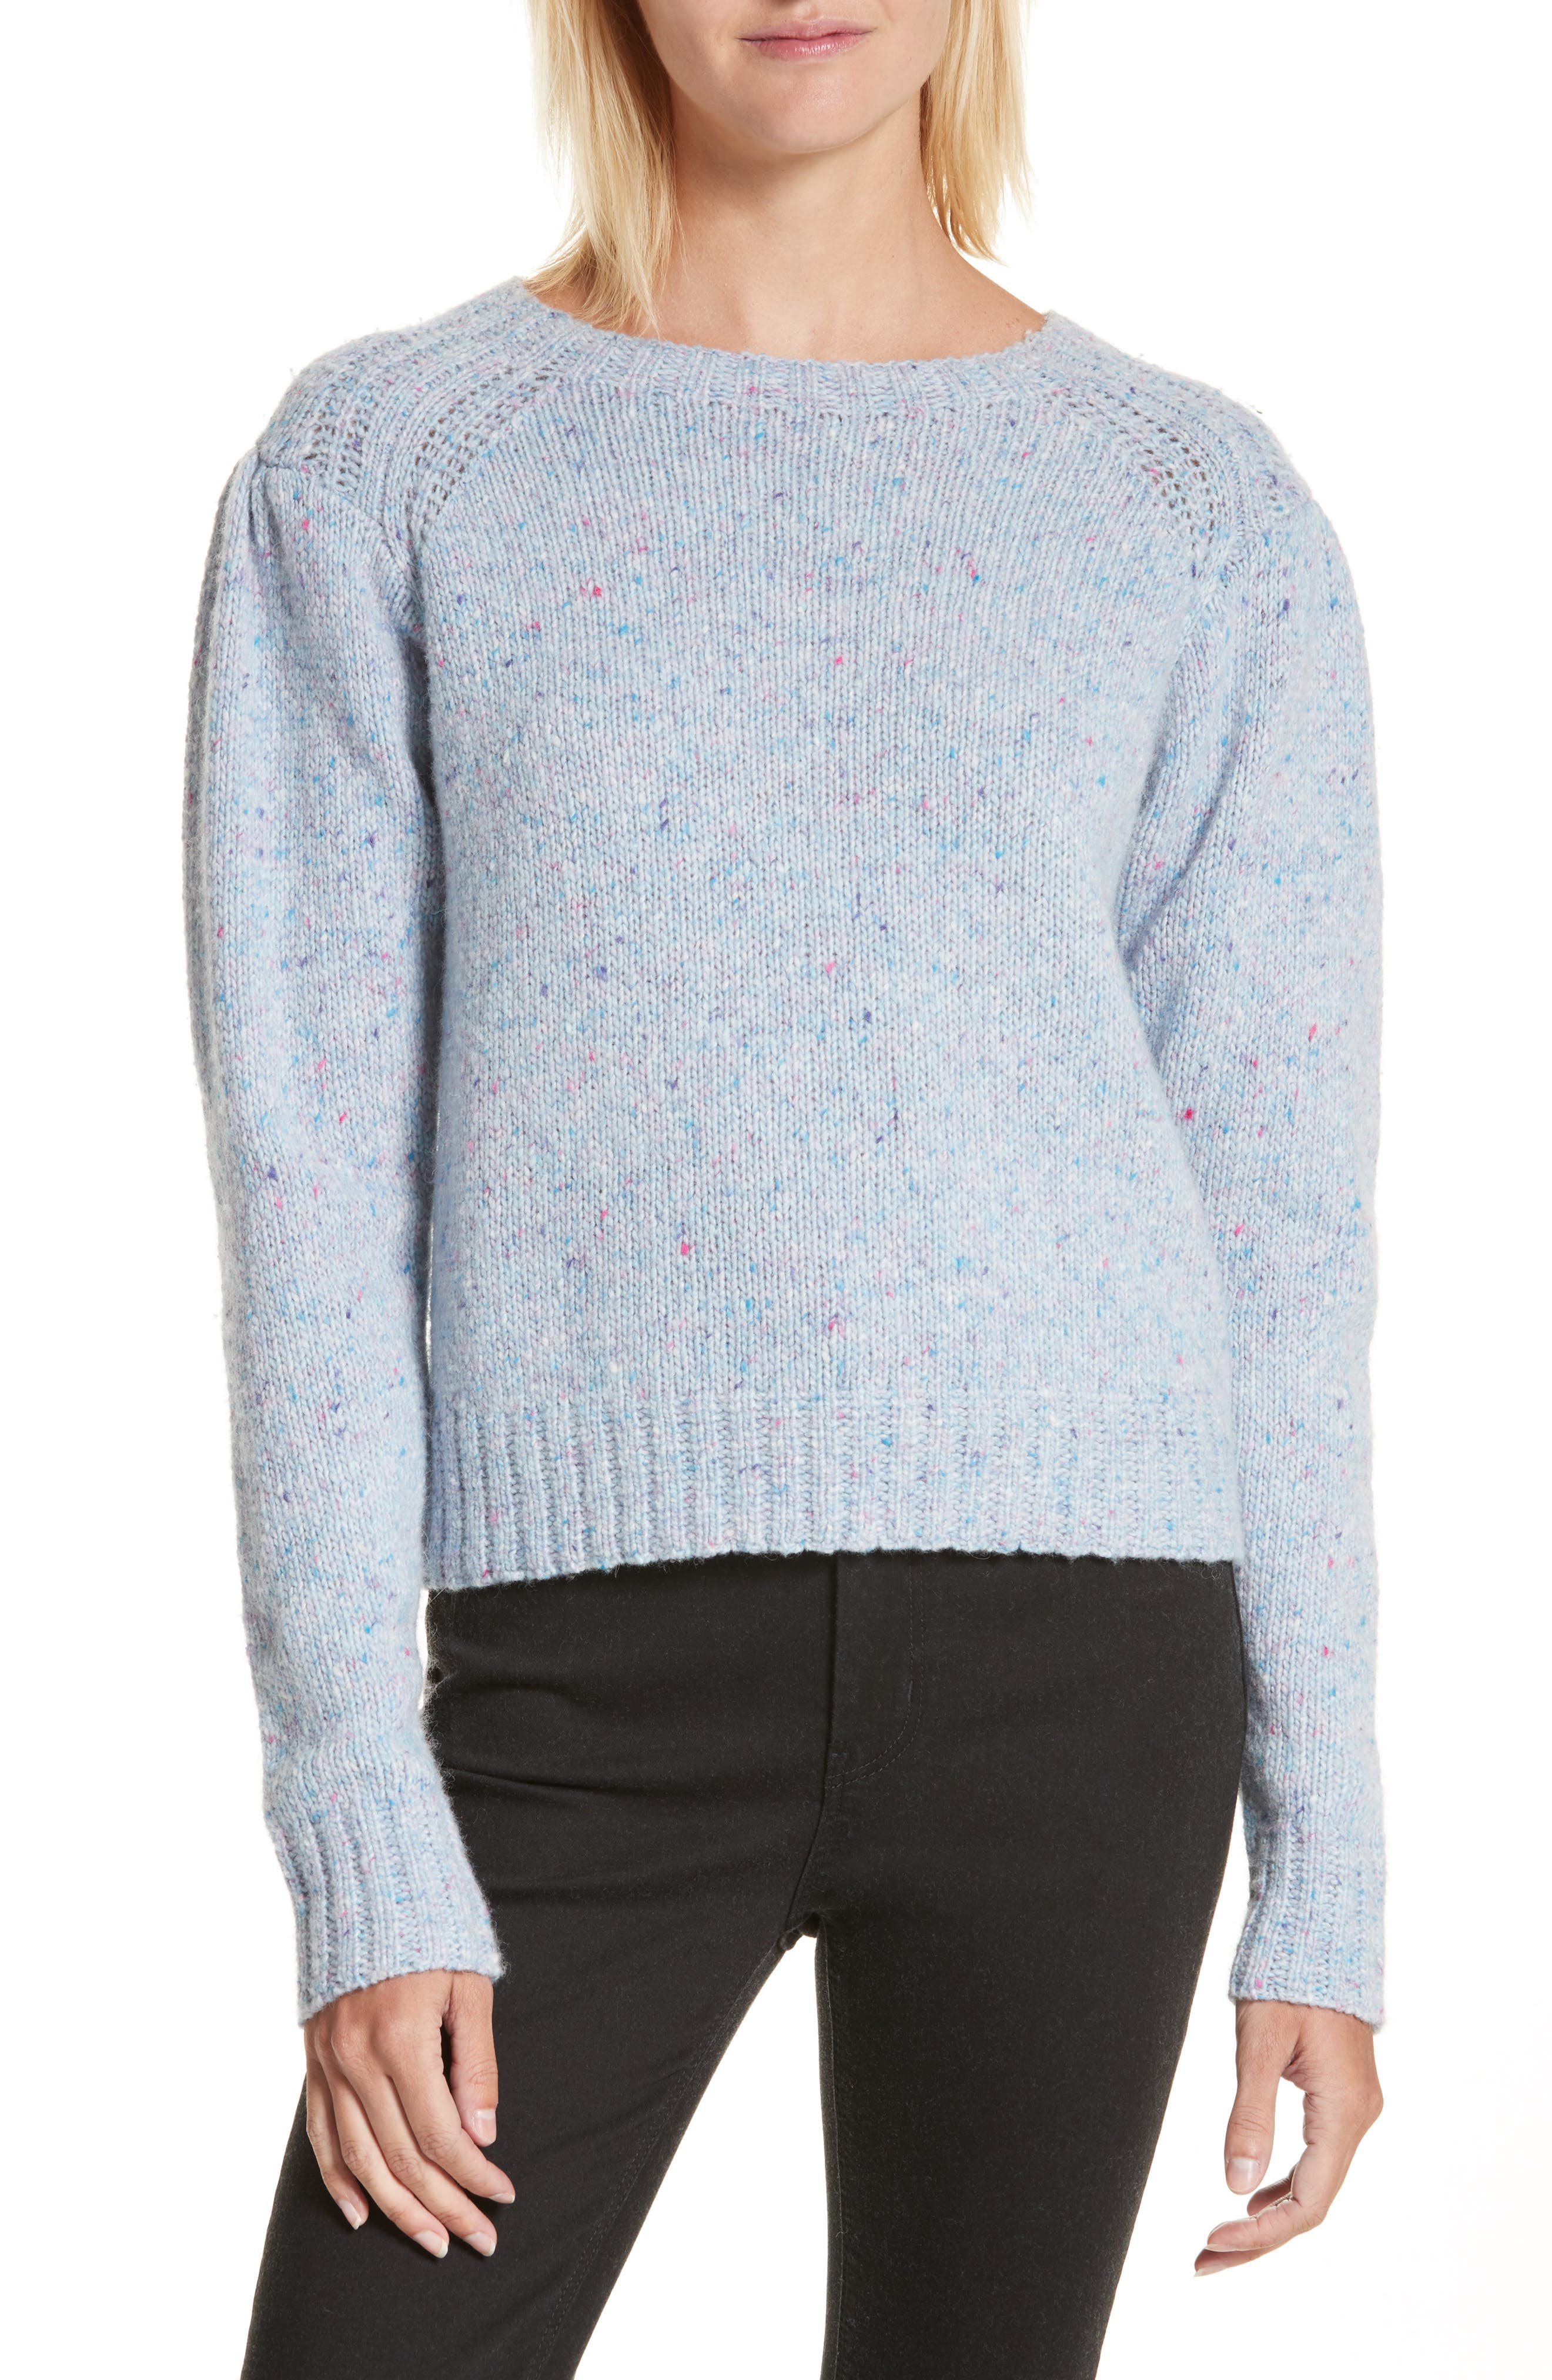 Donegal Tweed Pullover,                         Main,                         color, Blue Bell